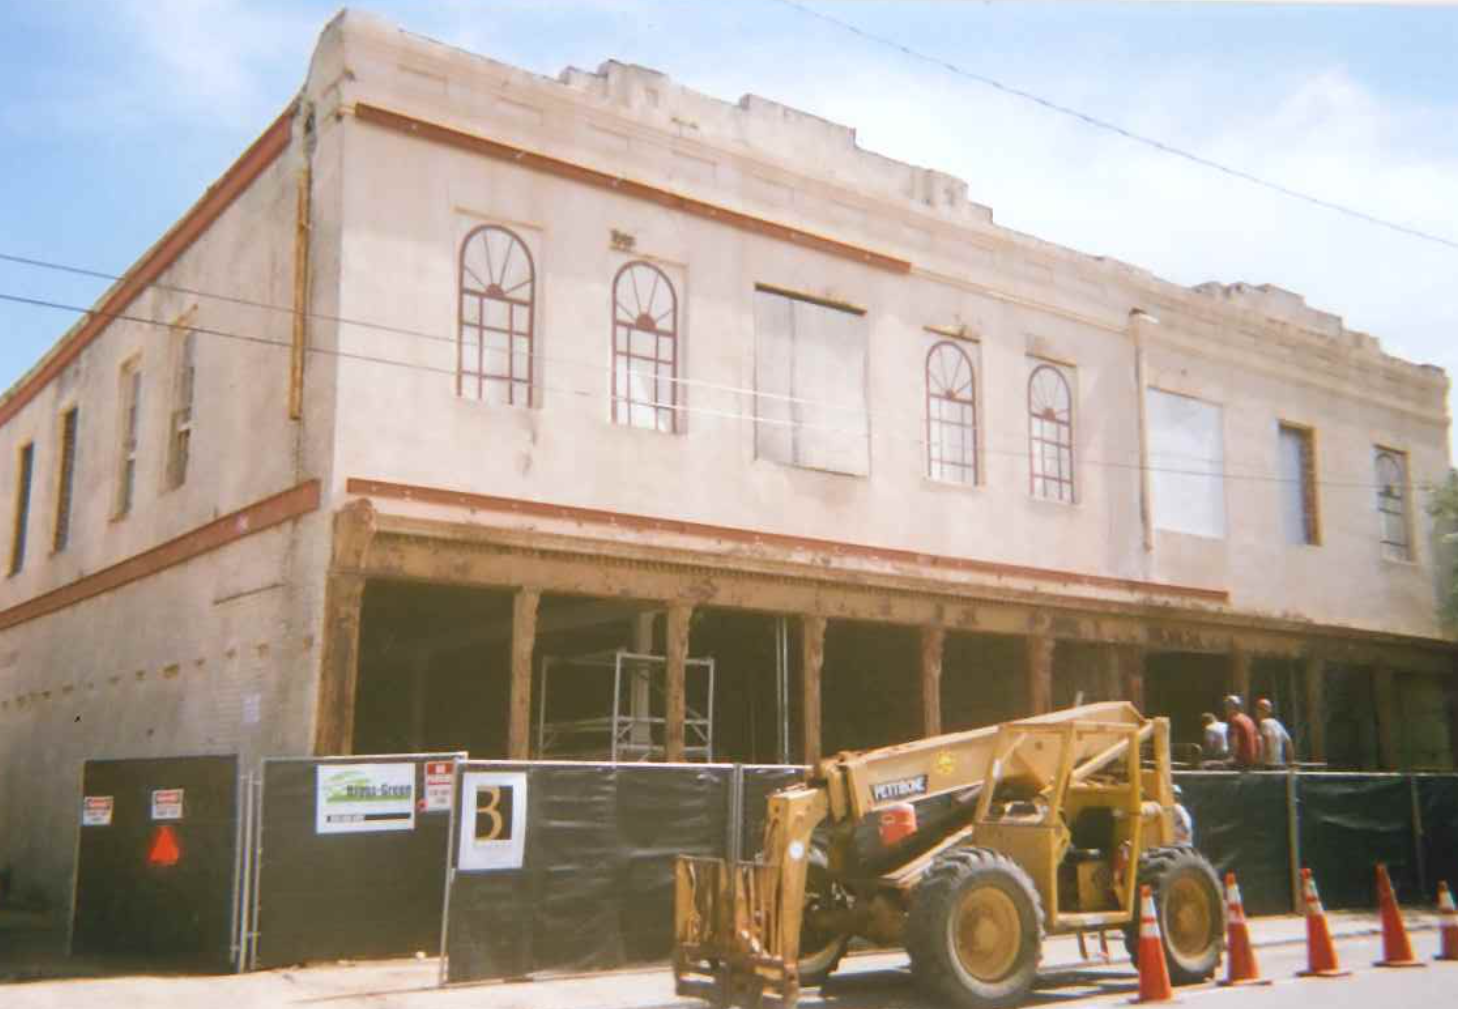 Picture of the District under construction before opening